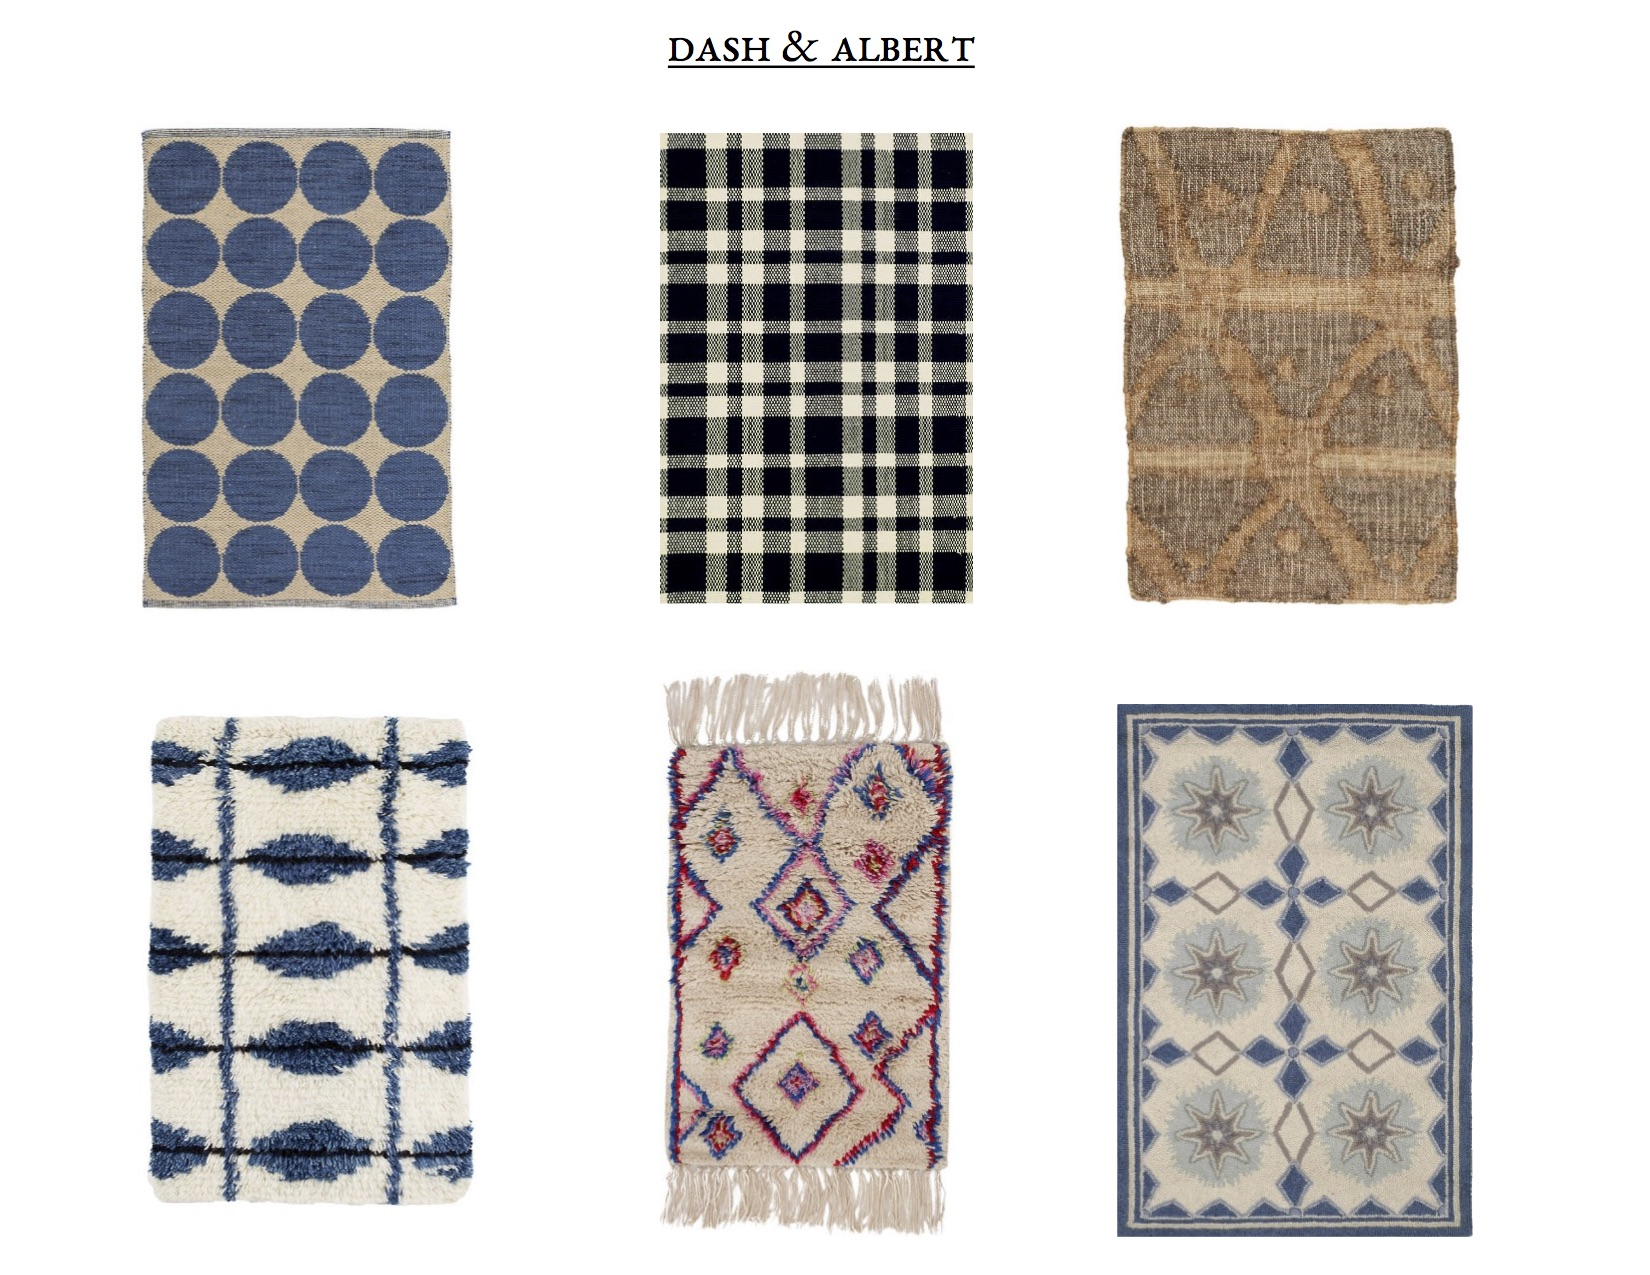 Best Dash & Albert Rugs